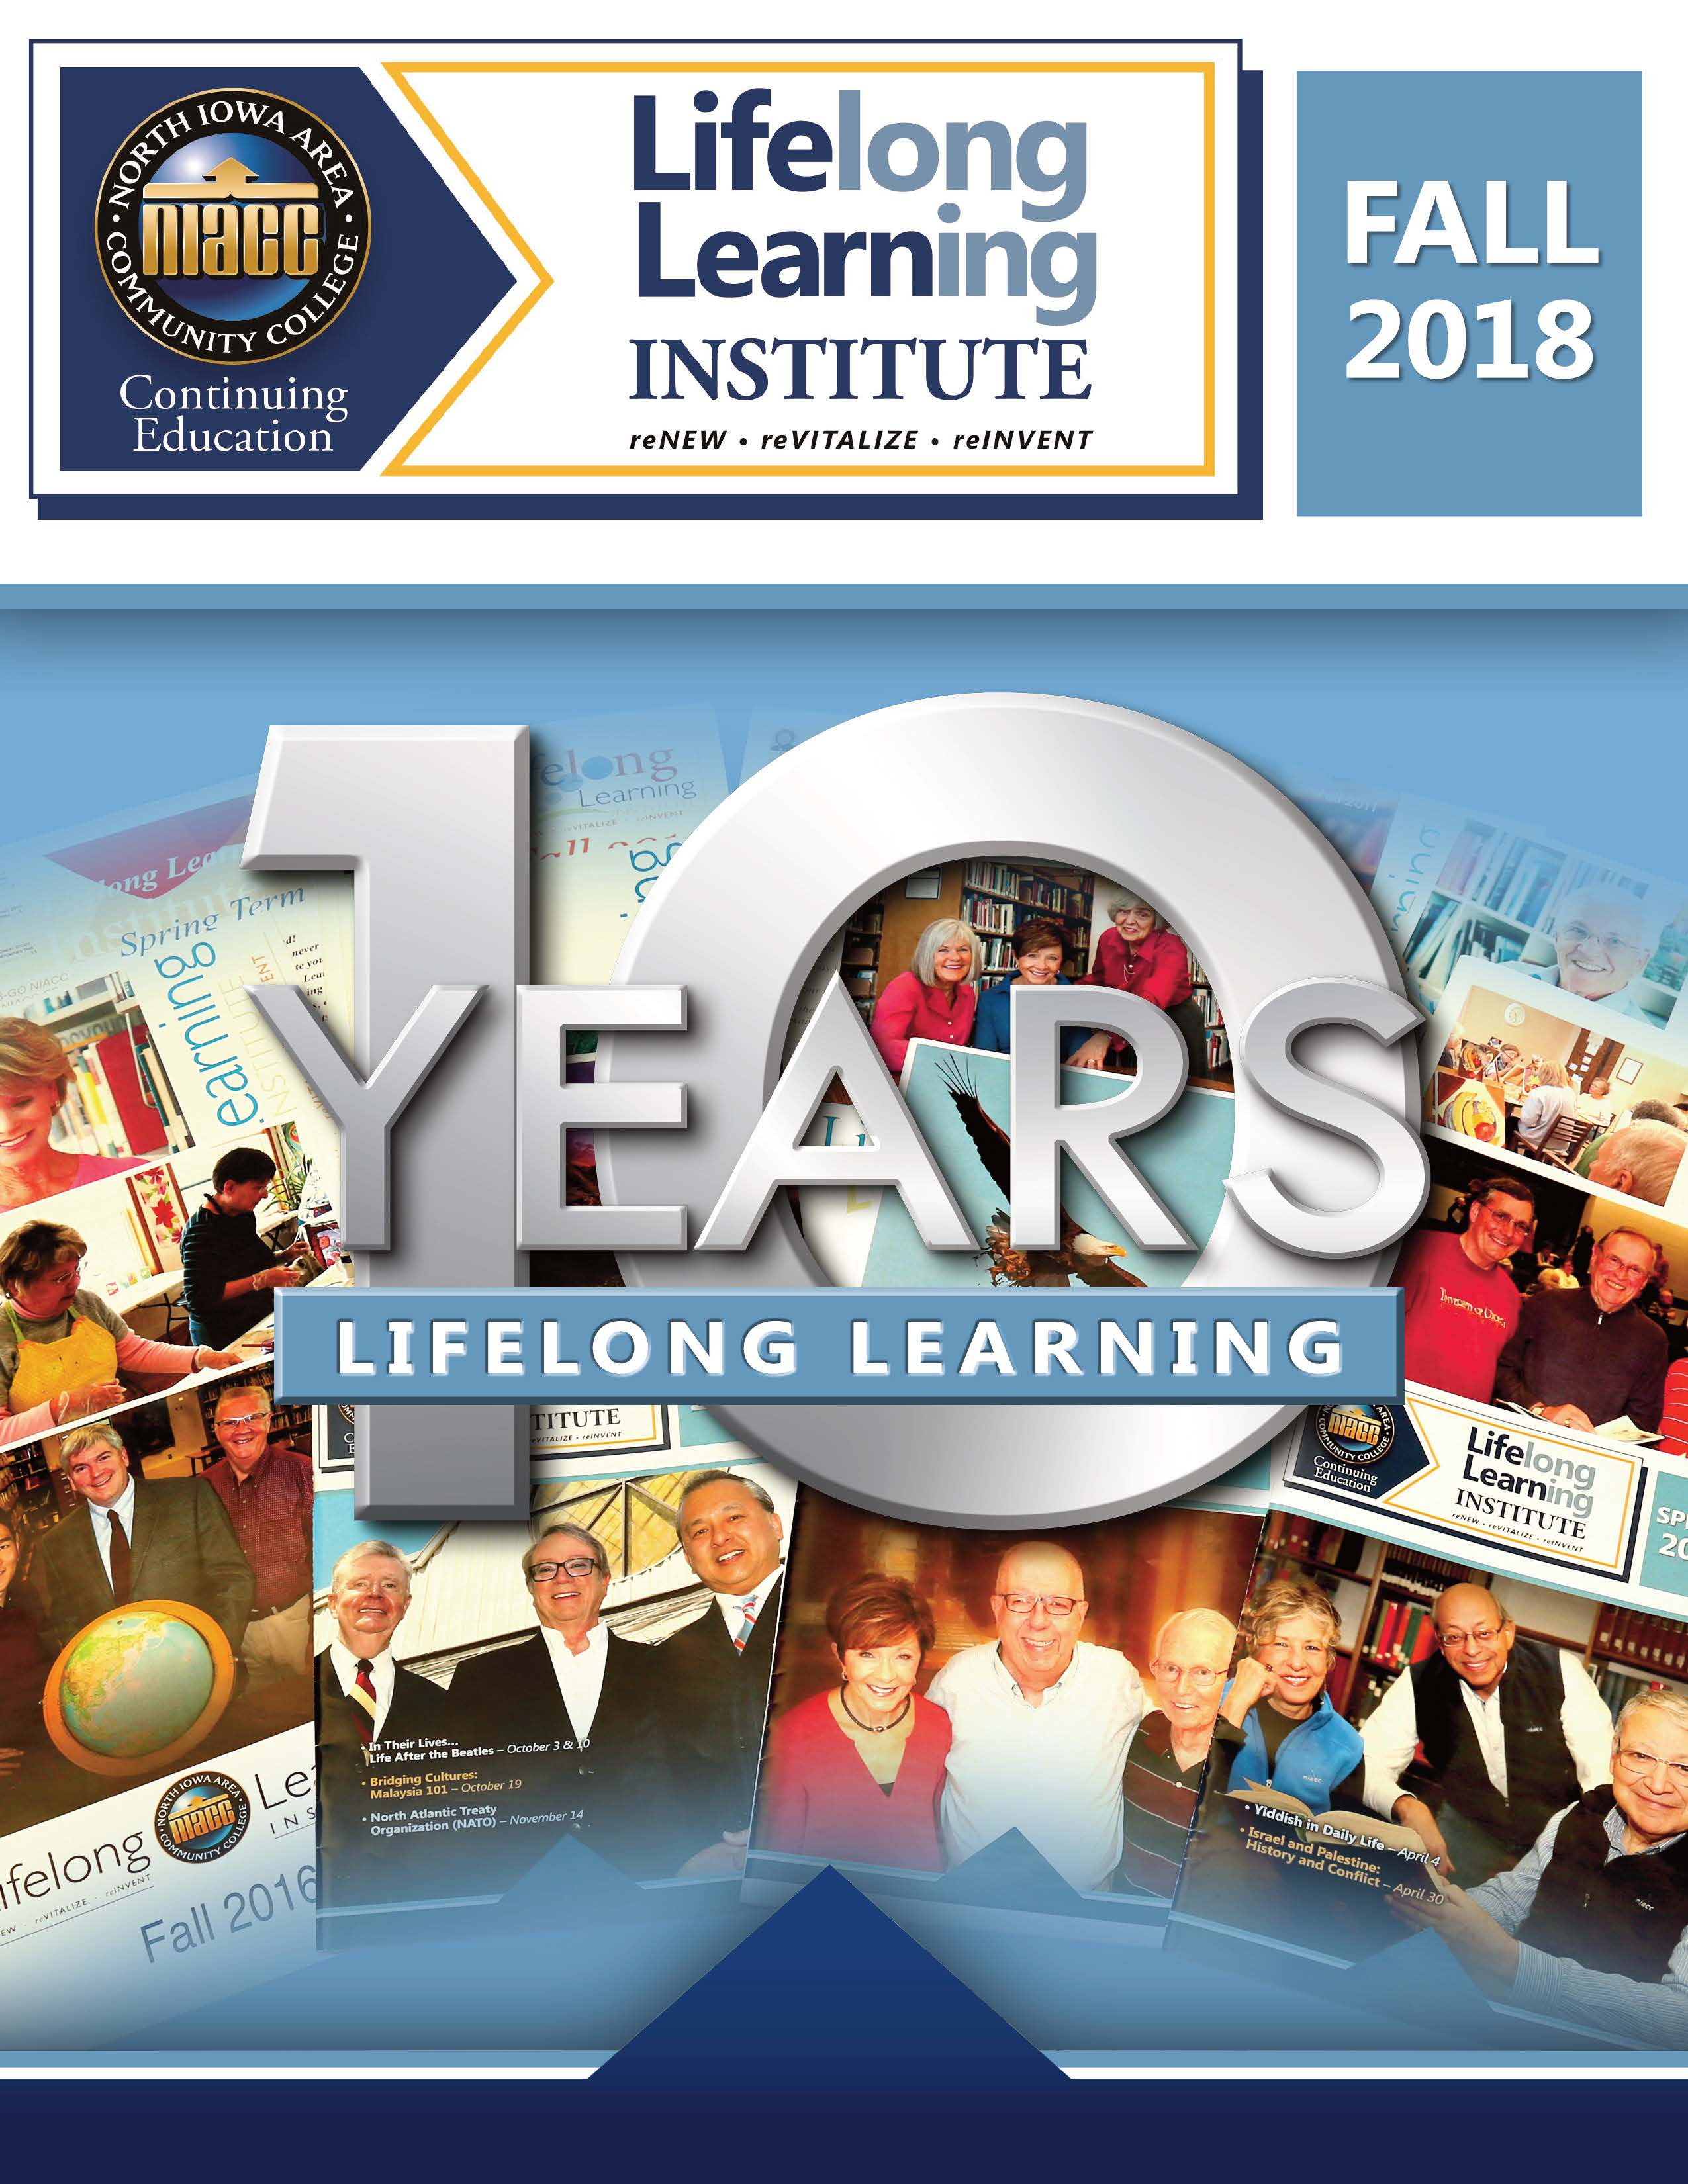 Cover image for the Lifelong Learning Fall 2018 Brochure